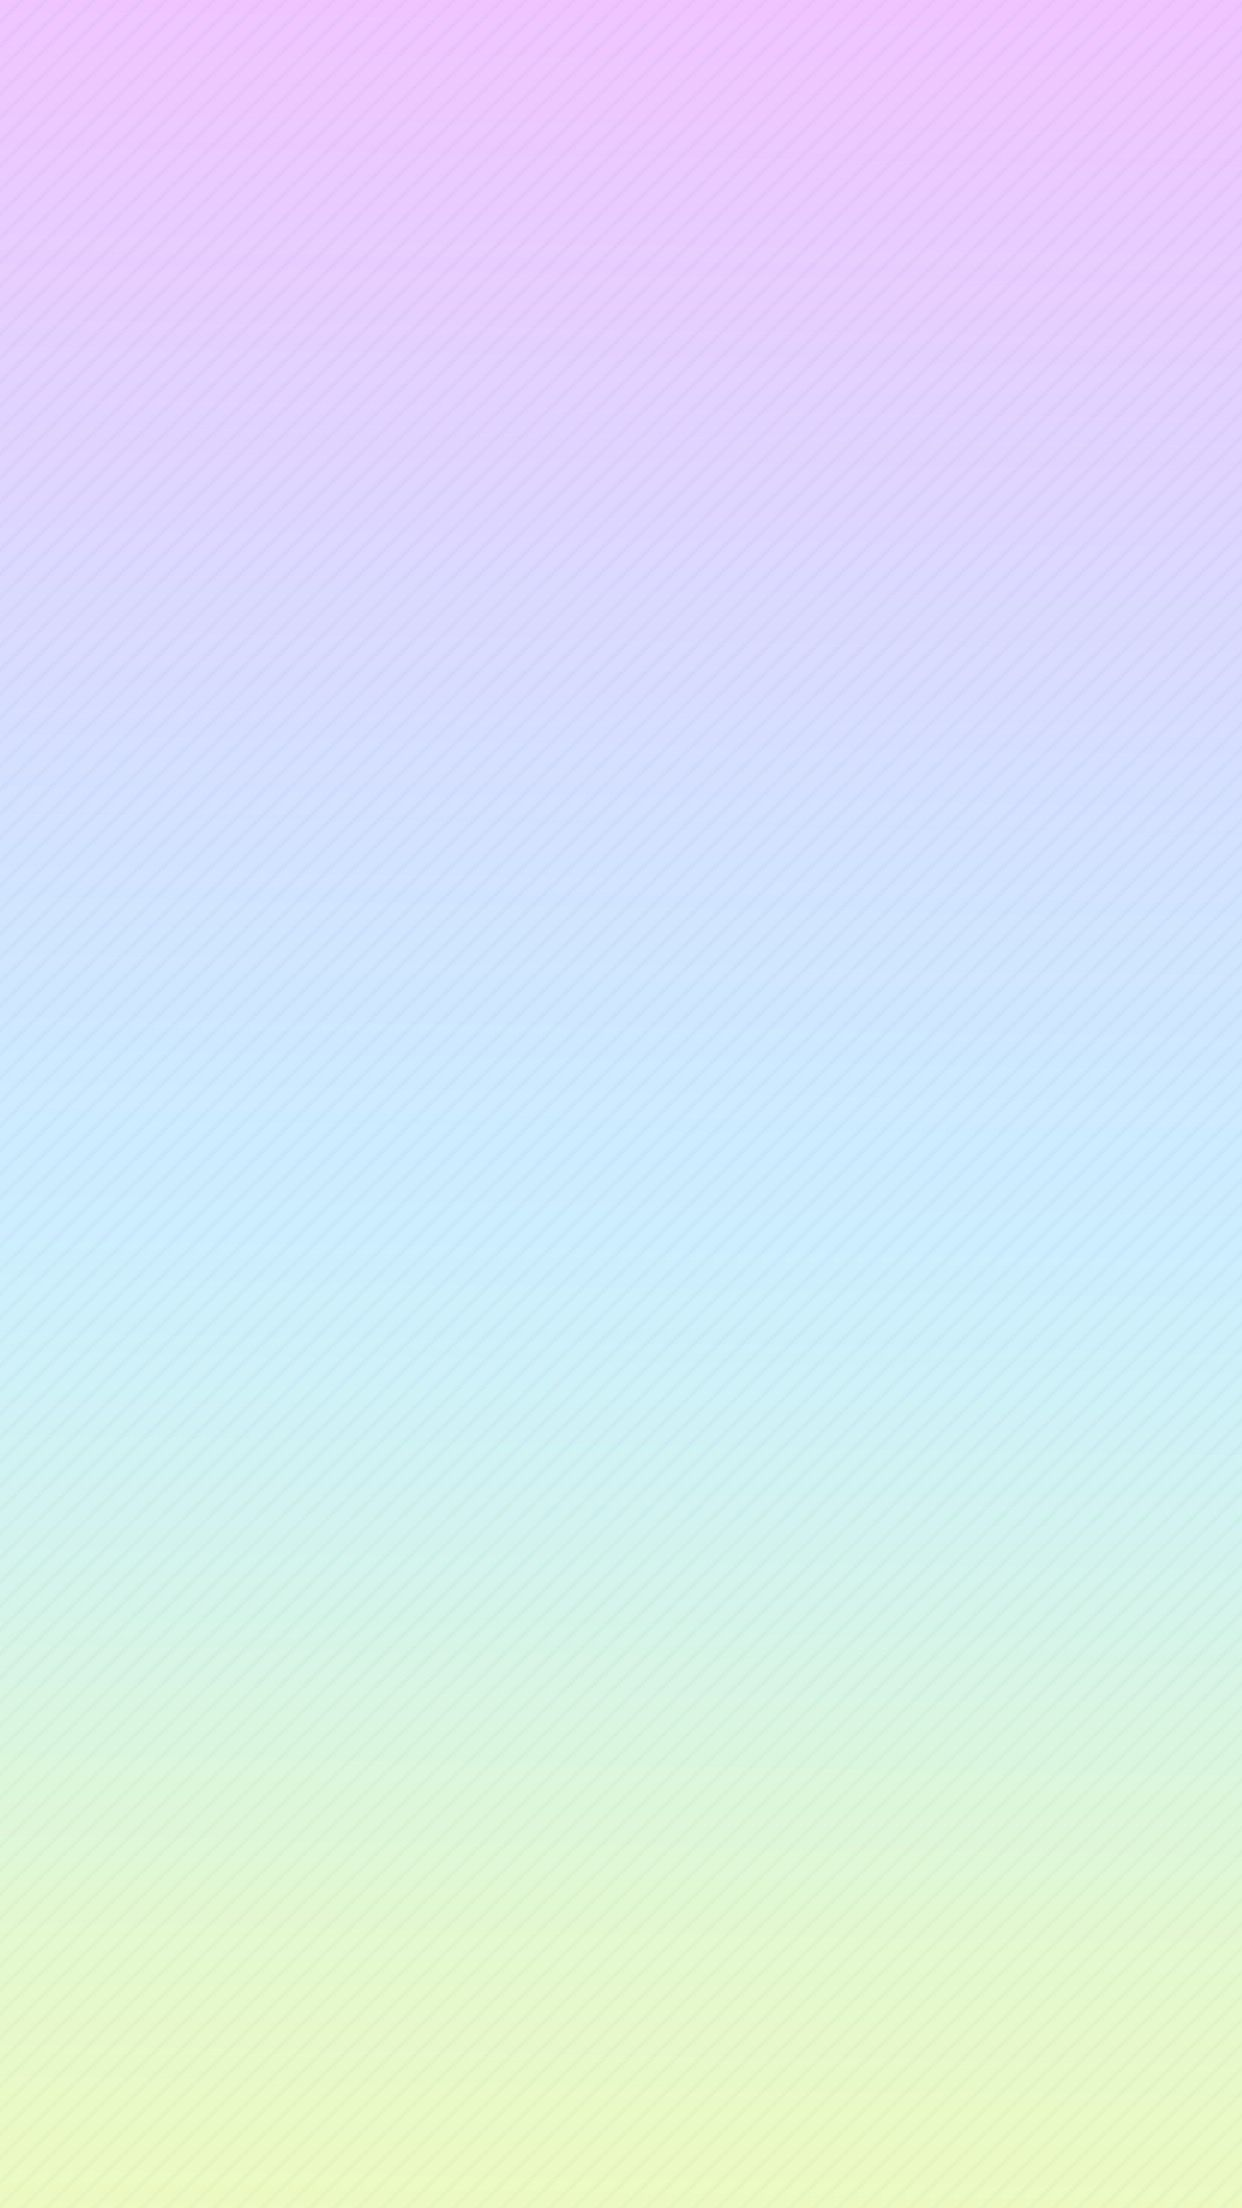 wallpaper, background, iphone, android, hd, pink, blue, purple